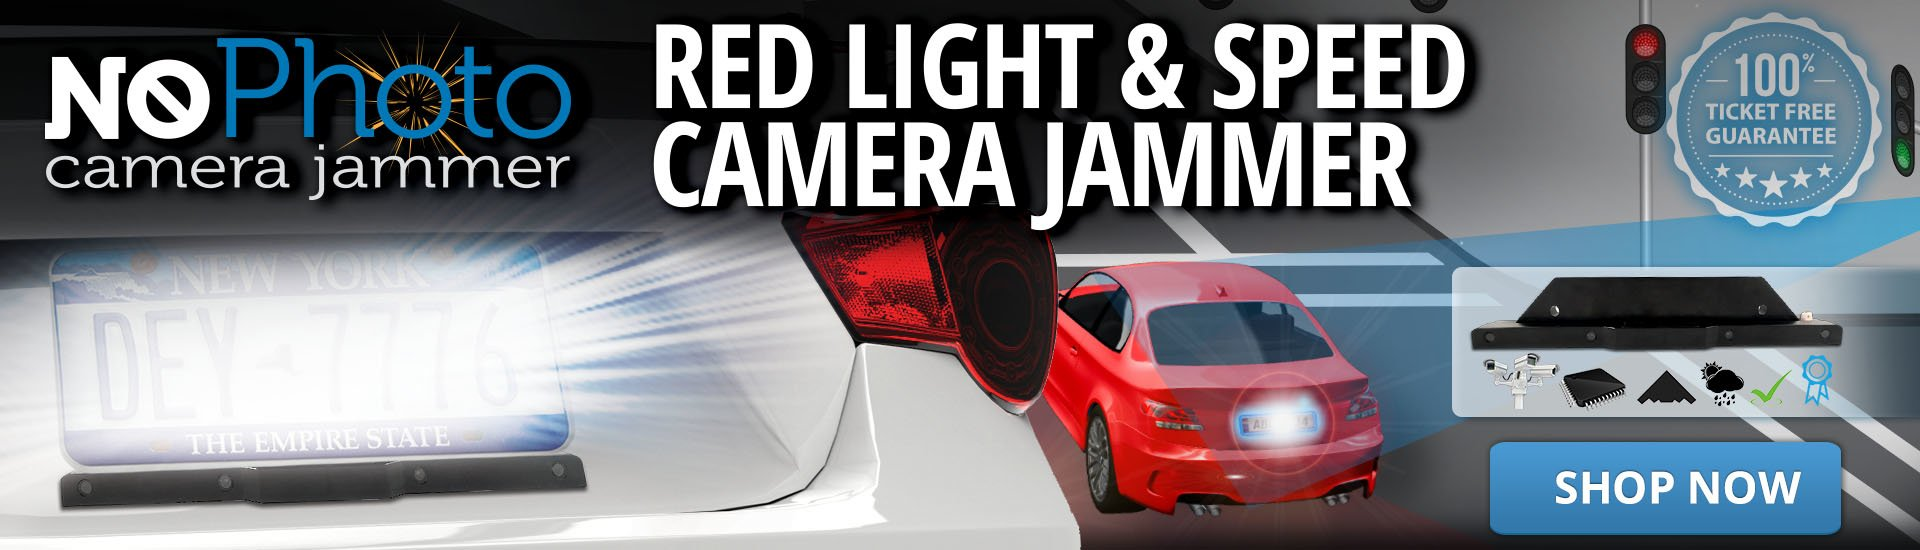 Red Light & Speed Camera Jammer